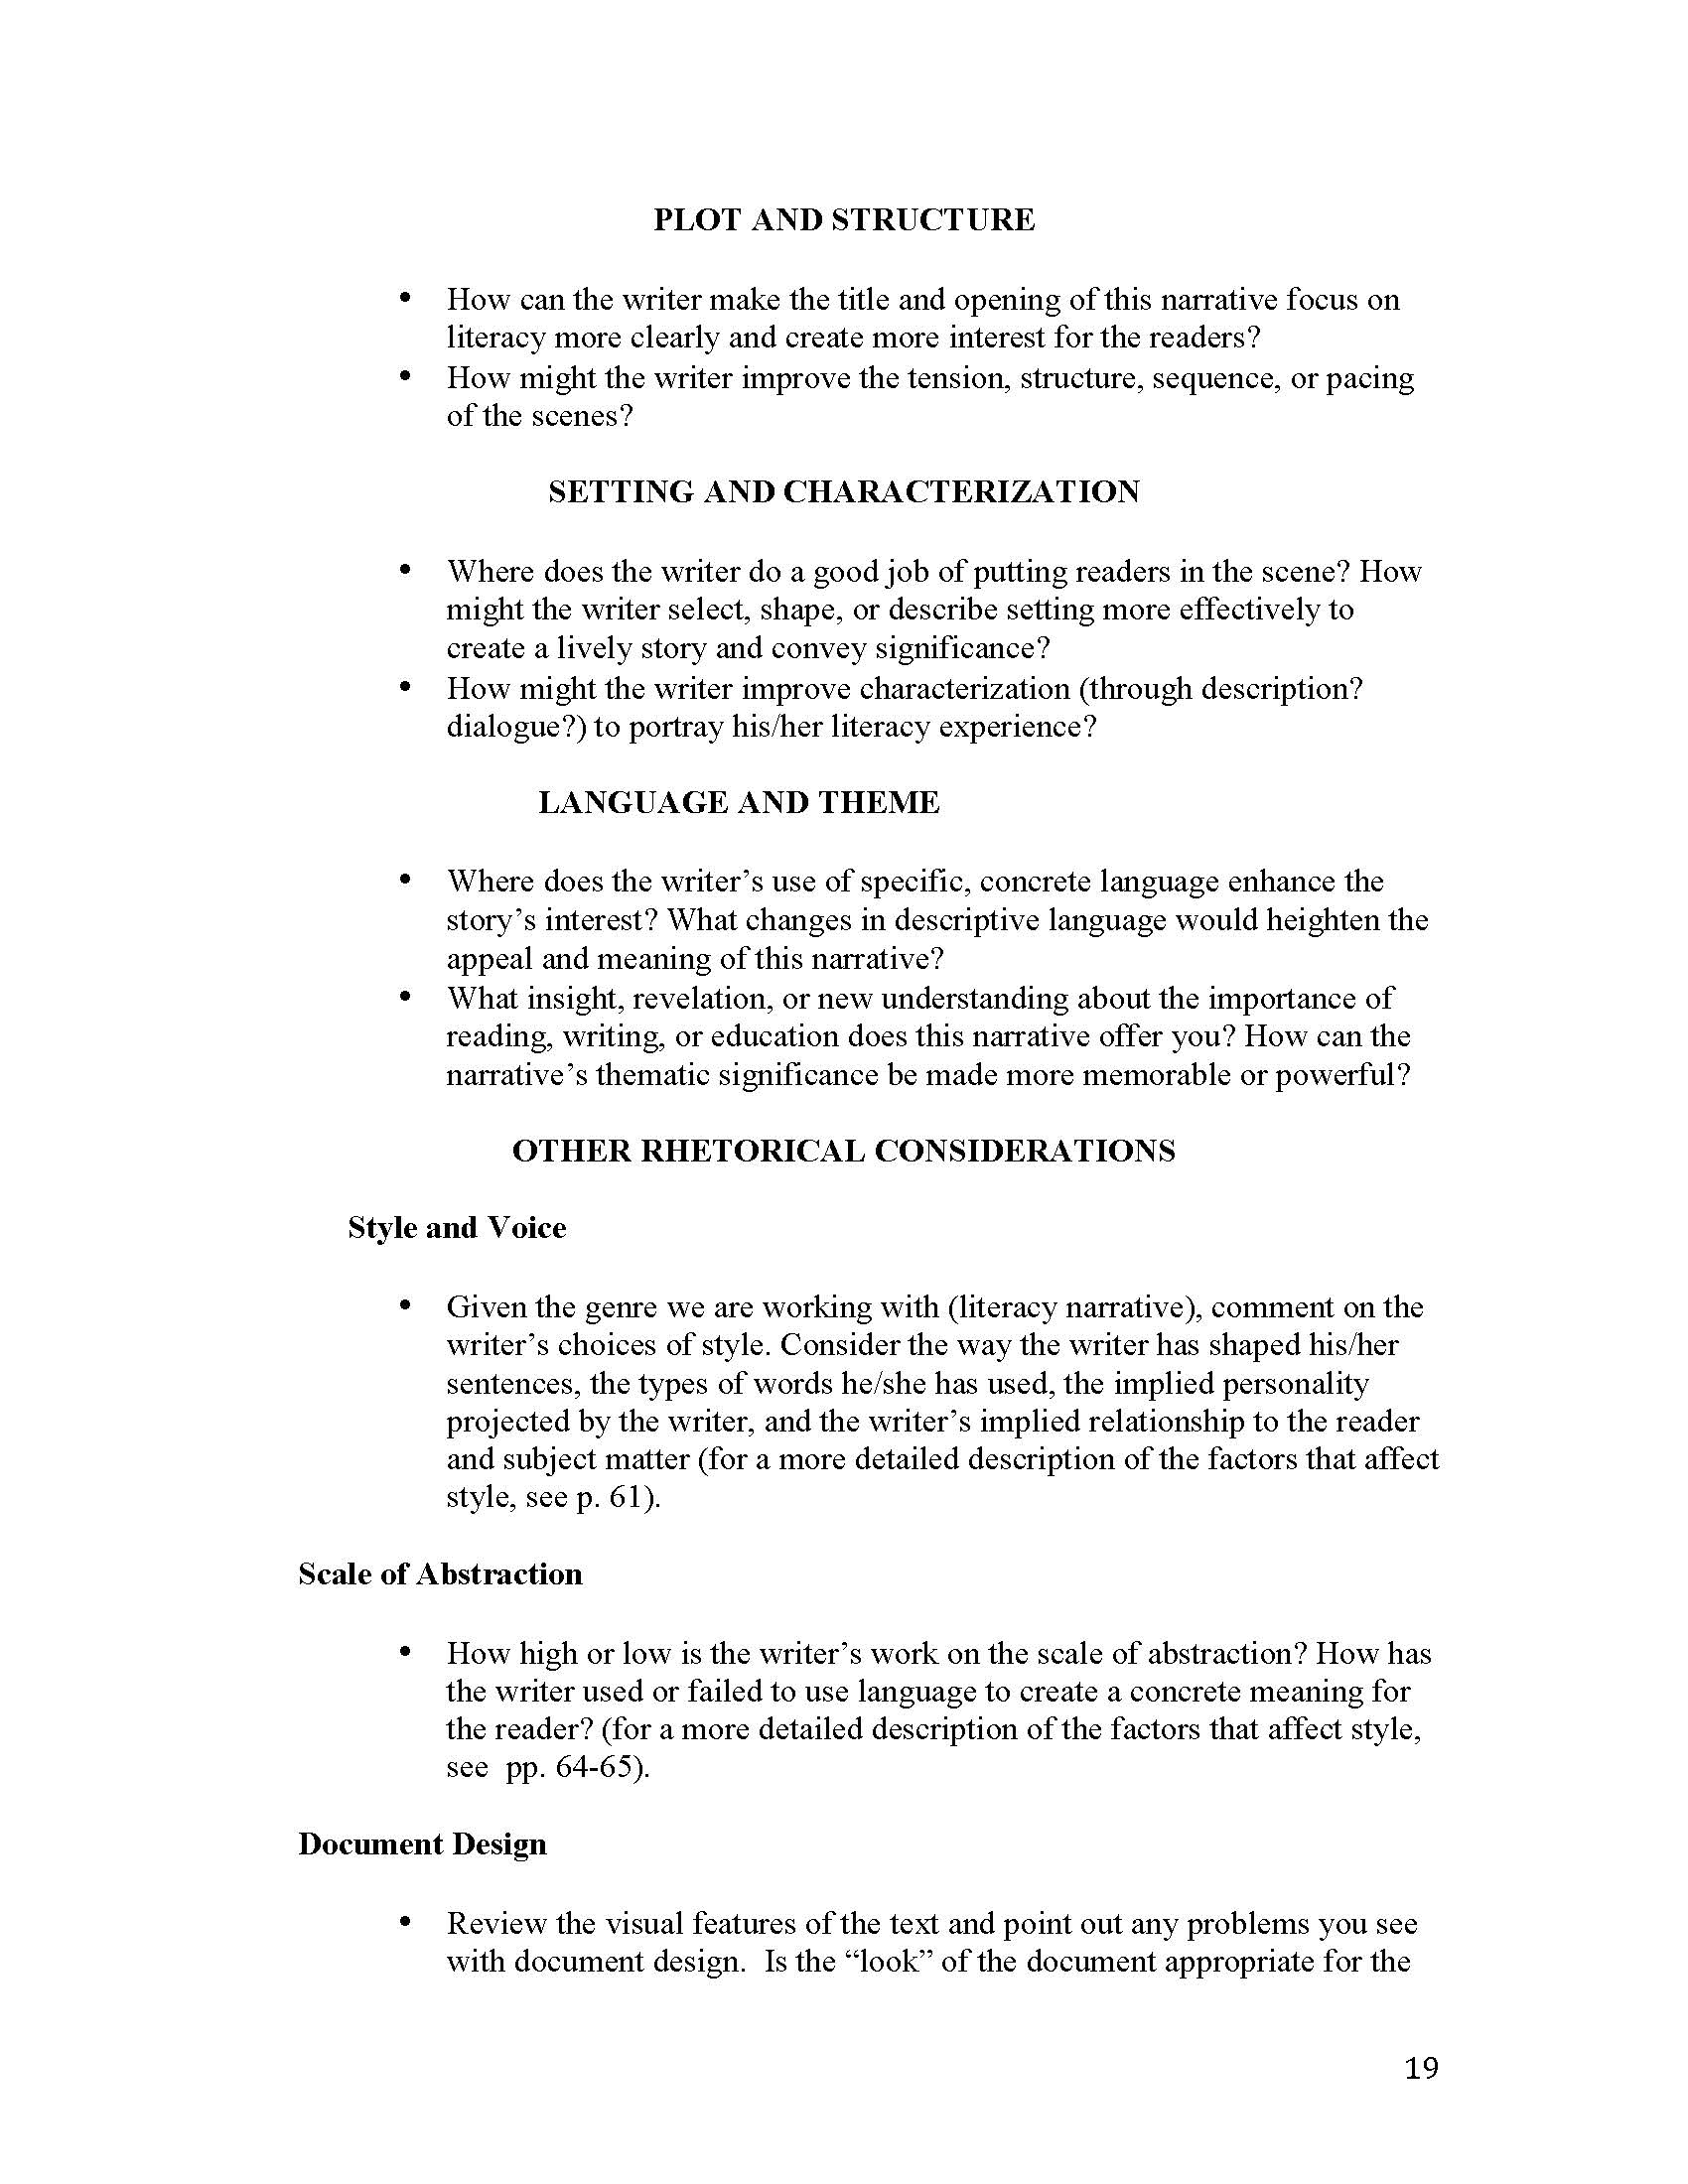 018 Unit 1 Literacy Instructor Copy Page 19 Essay Example Writing Amazing A Narrative About Being Judged Quizlet Powerpoint Full